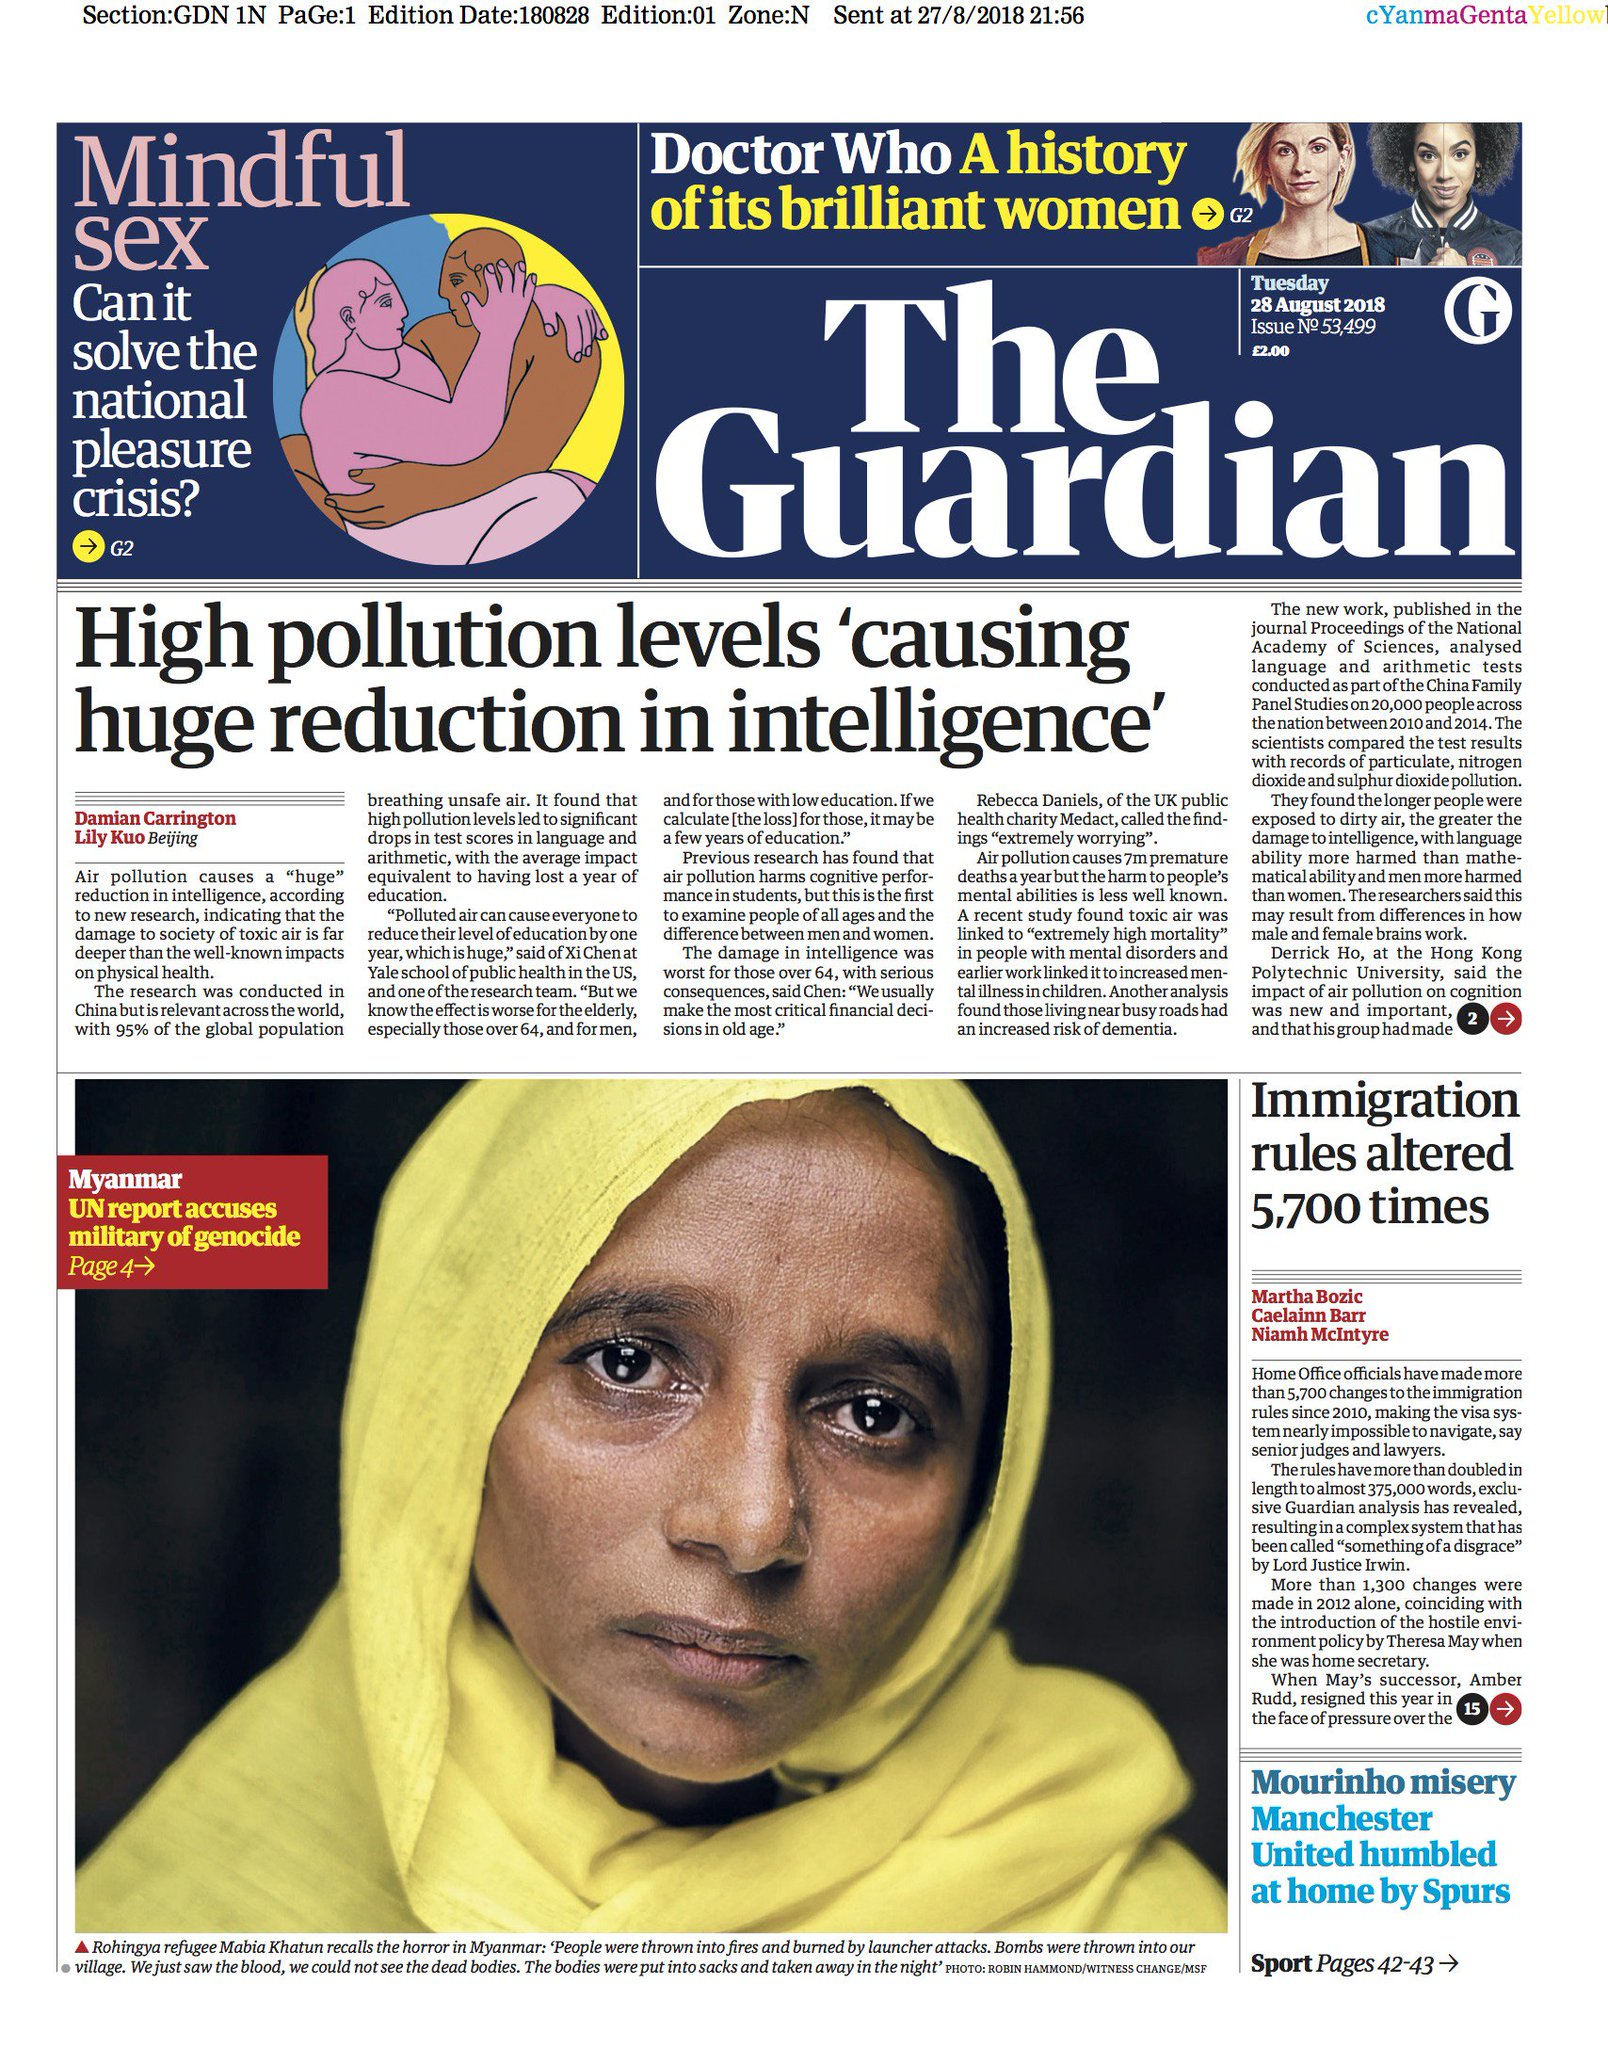 Guardian front page, Tuesday 28 August 2018: High pollution levels 'causing huge reduction in intelligence' https://t.co/MIWwg90JVl